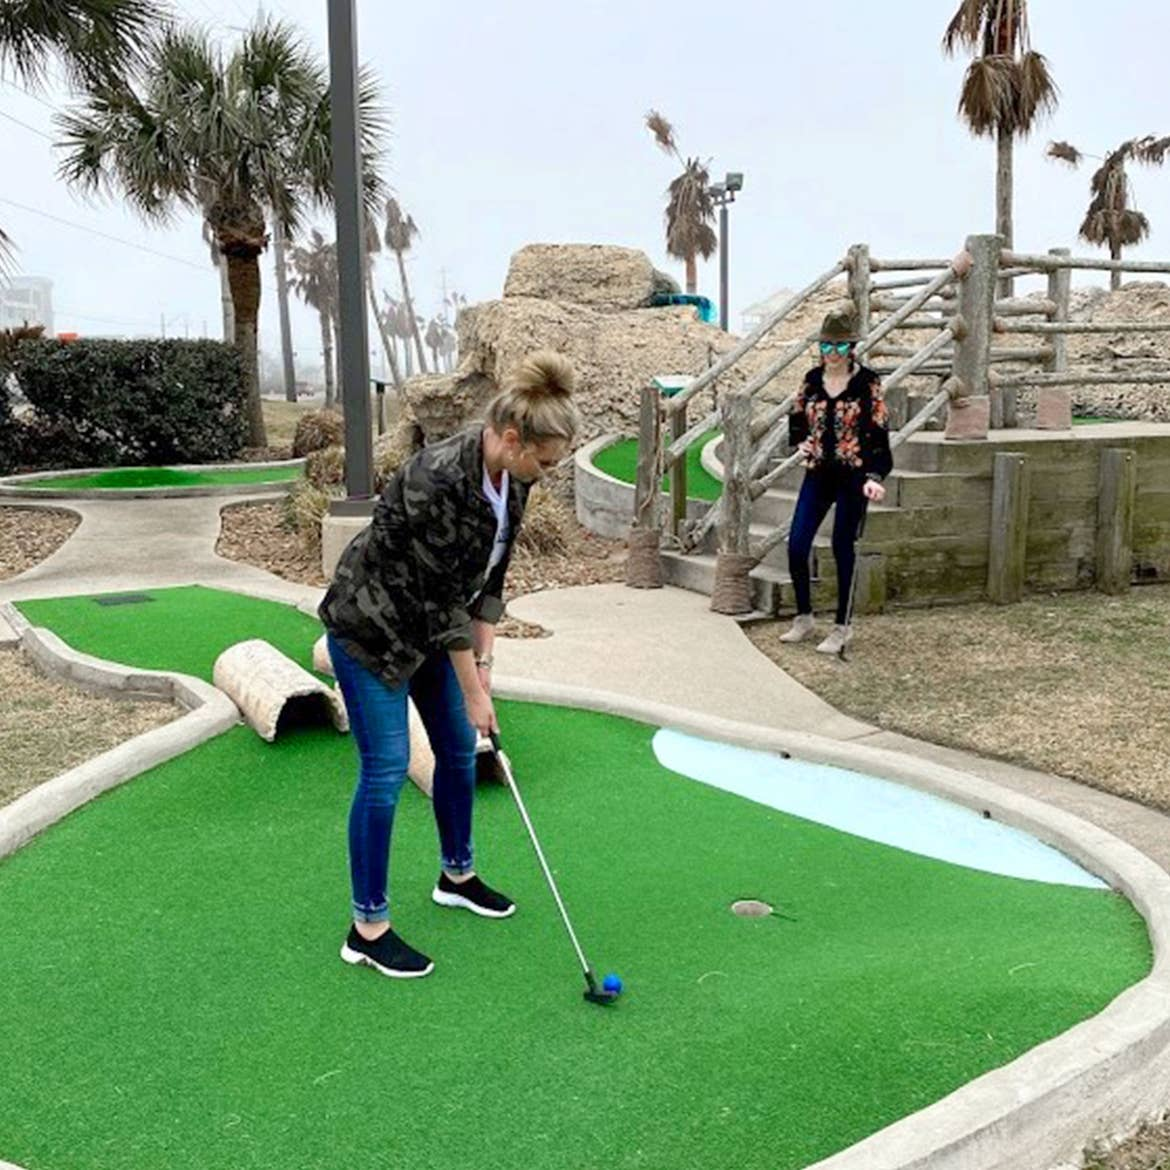 Featured Contributor, Amanda Nall (left) plays mini-golf with her friend at our Galveston Beach Resort in Galveston, Tx.